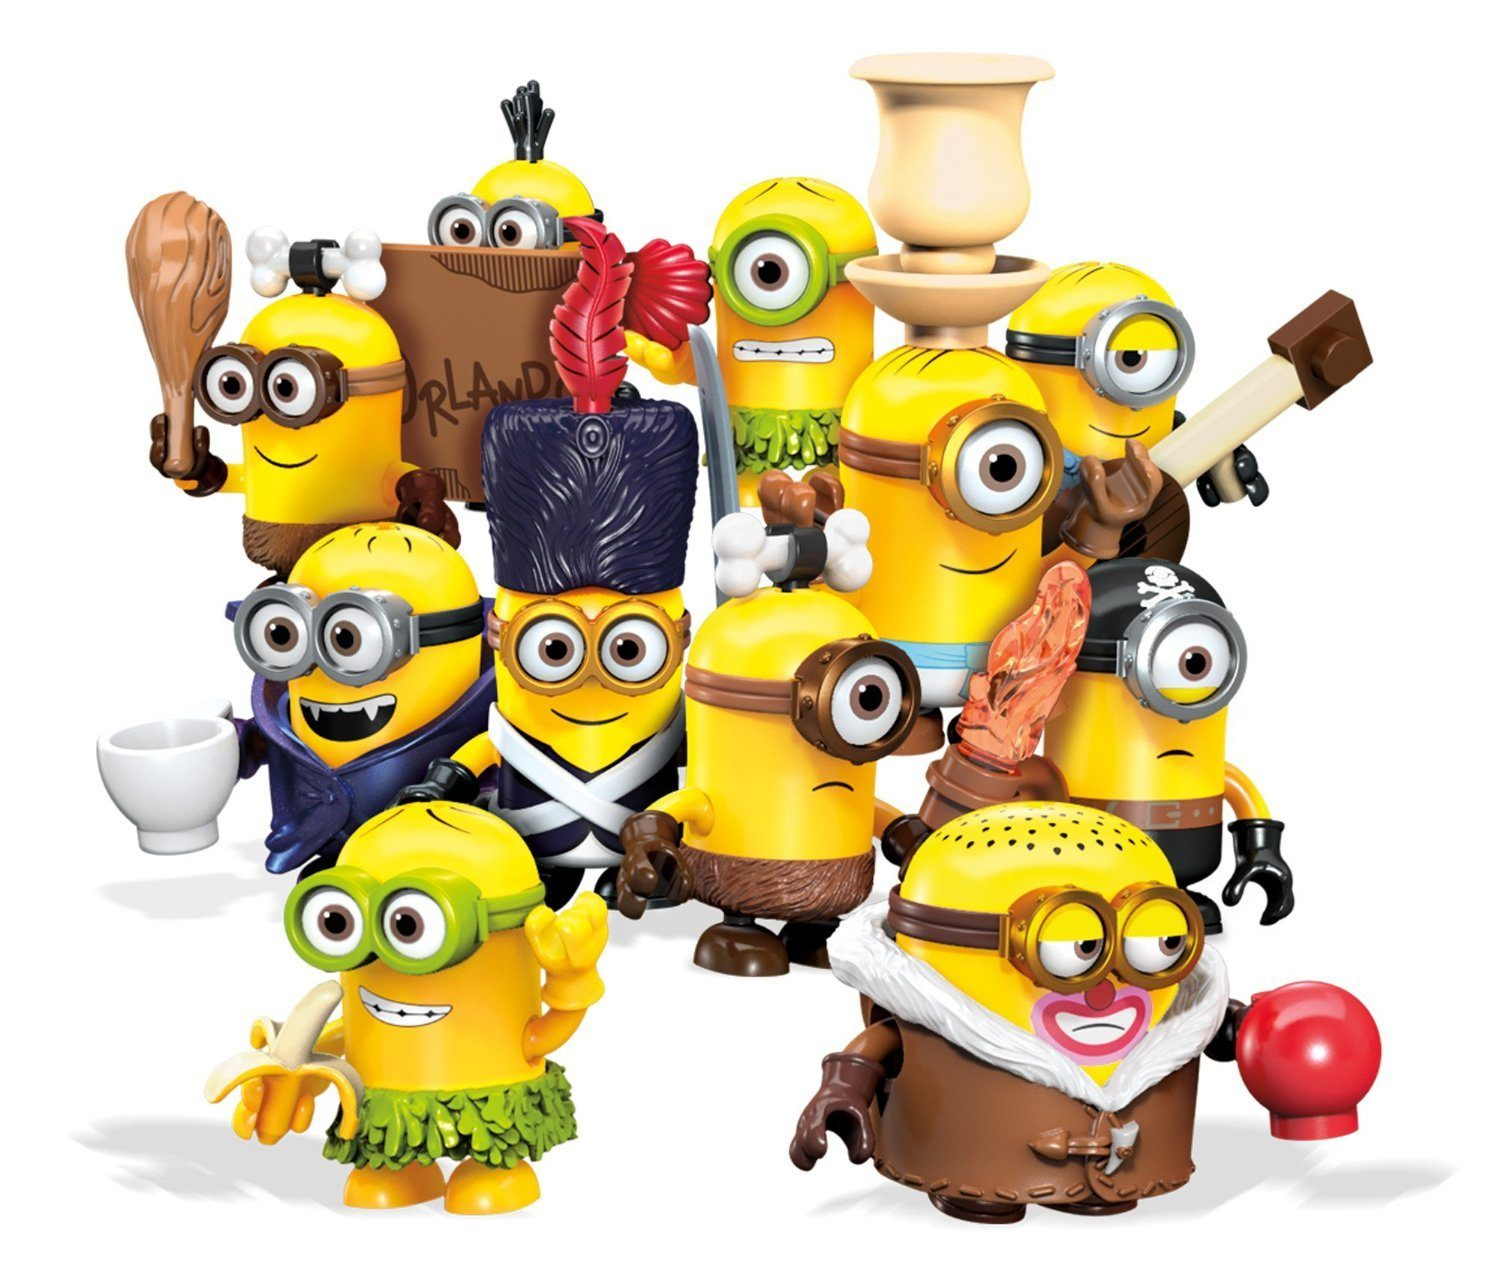 Mega Bloks Minions Blind Pack Series III Buildable Figure (Styles May Vary) Only $2.99!